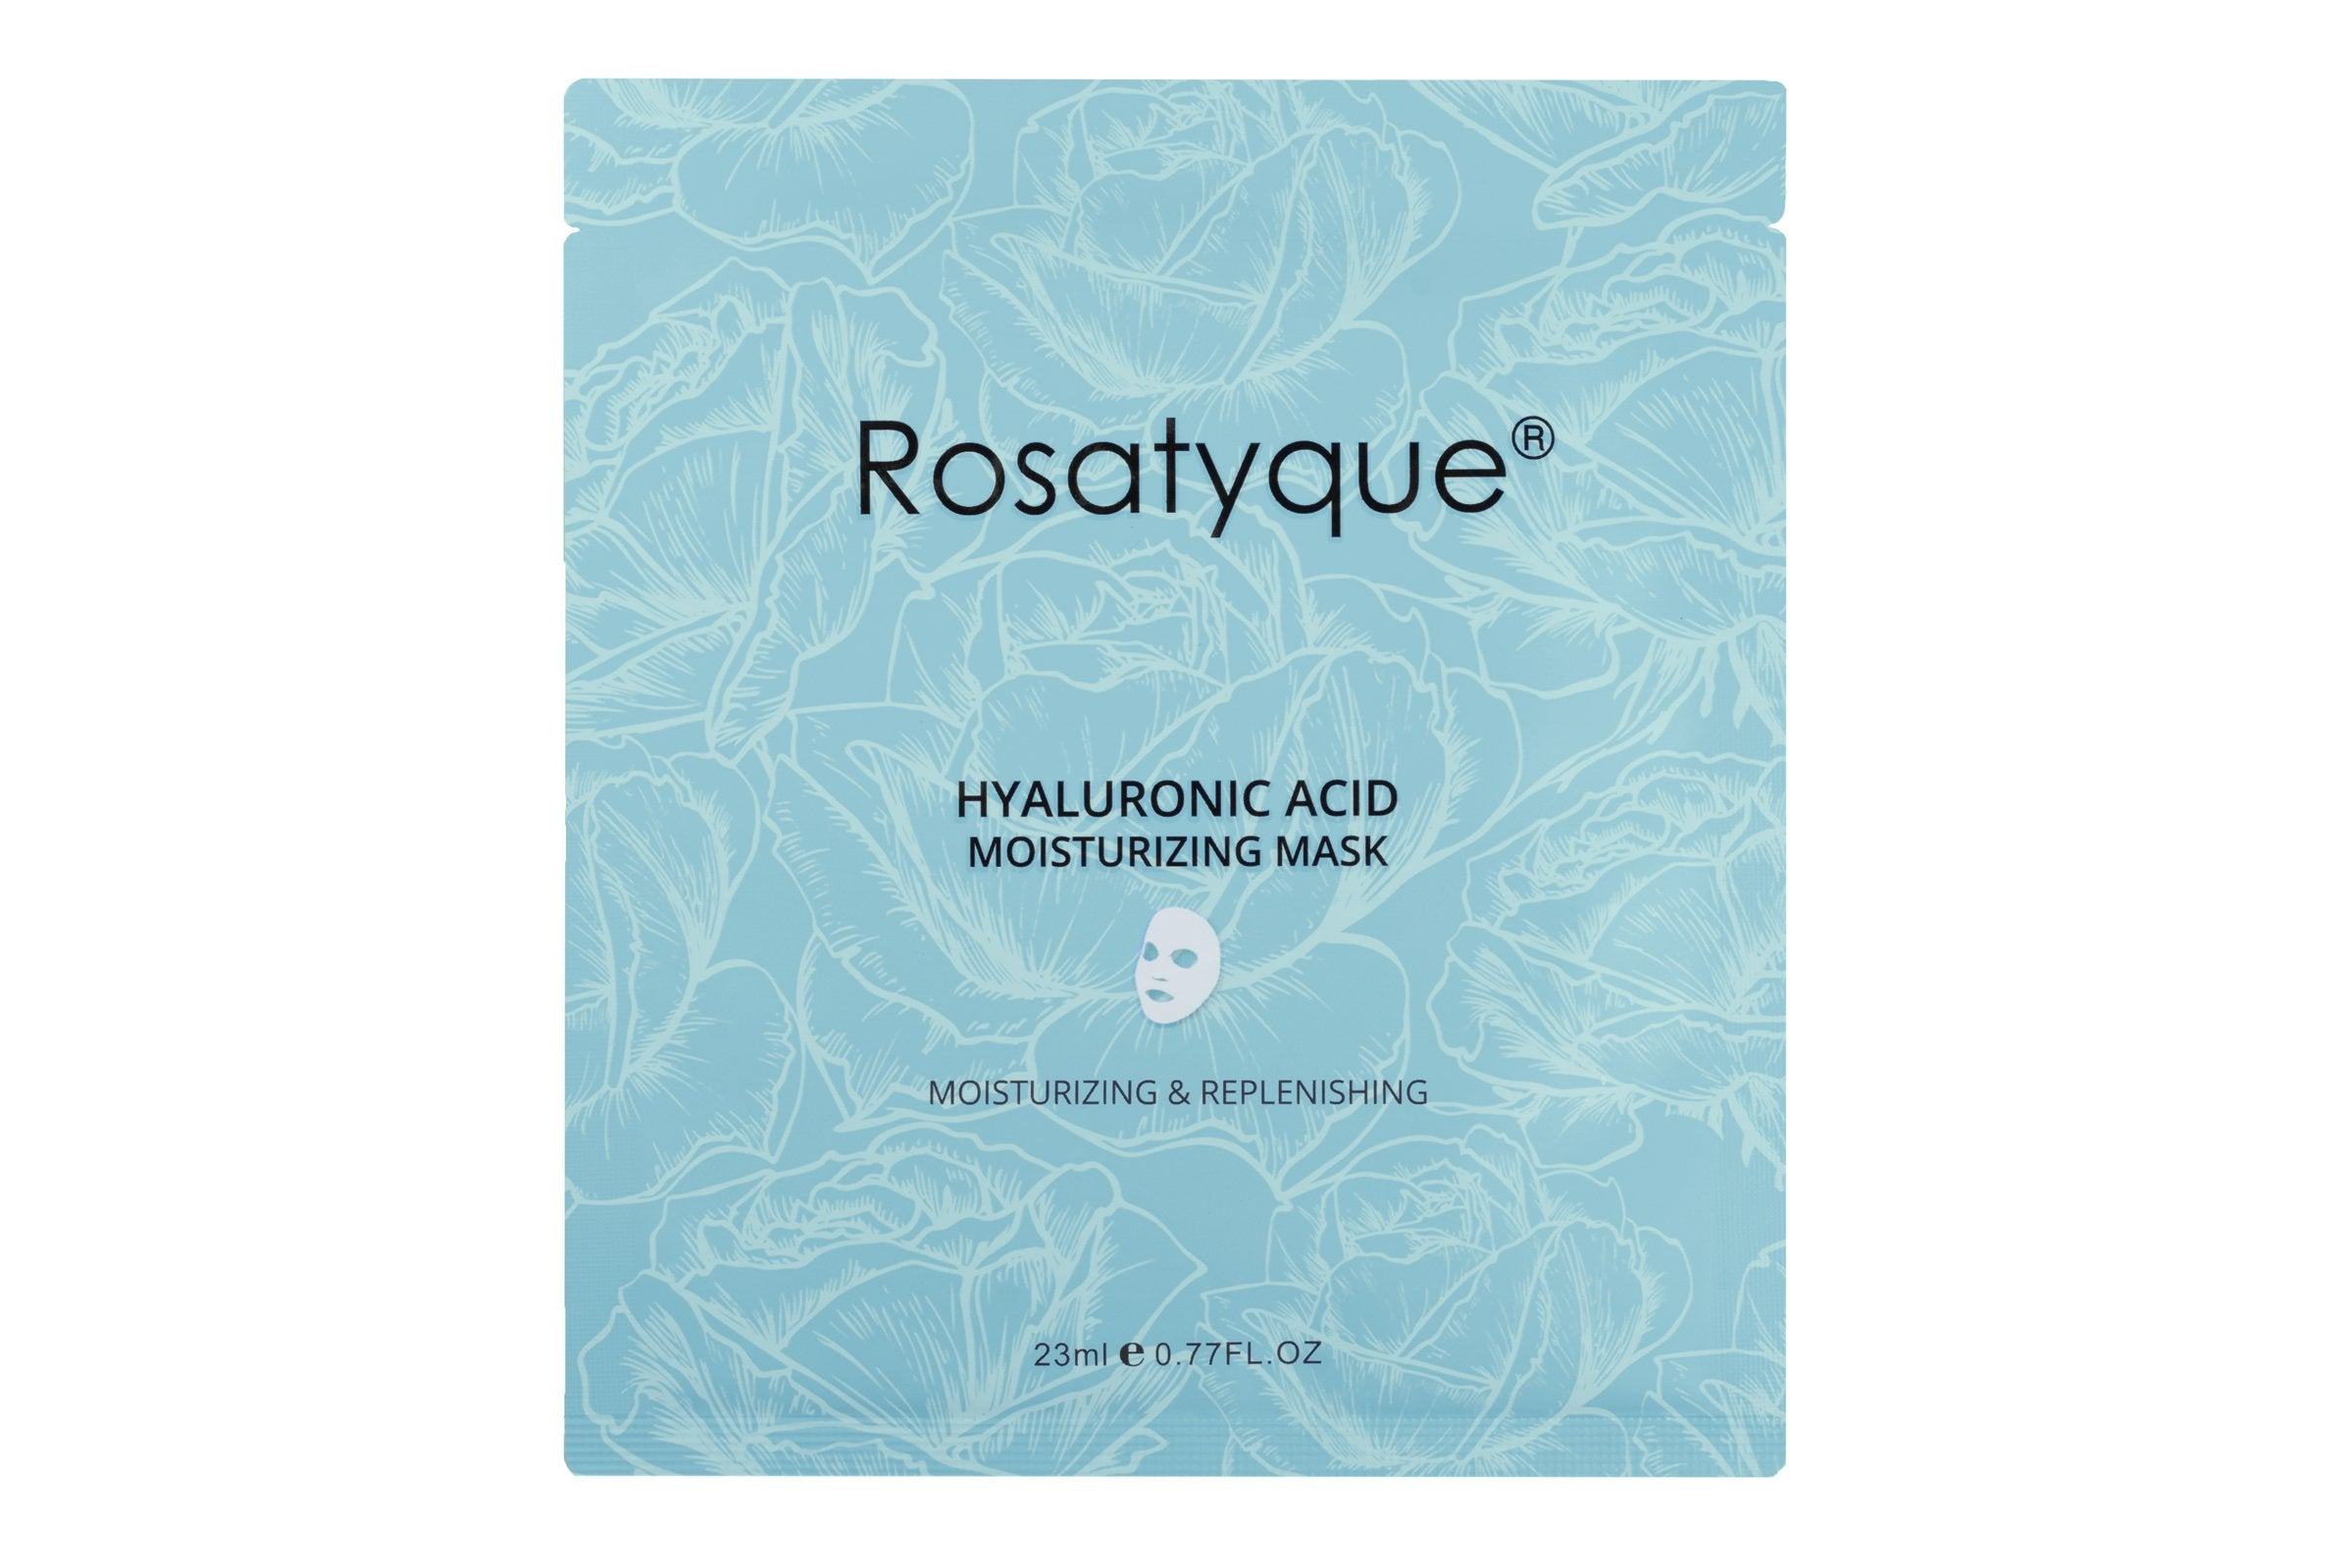 Hyaluronic Acid Moisturizing Mask - Rosatyque